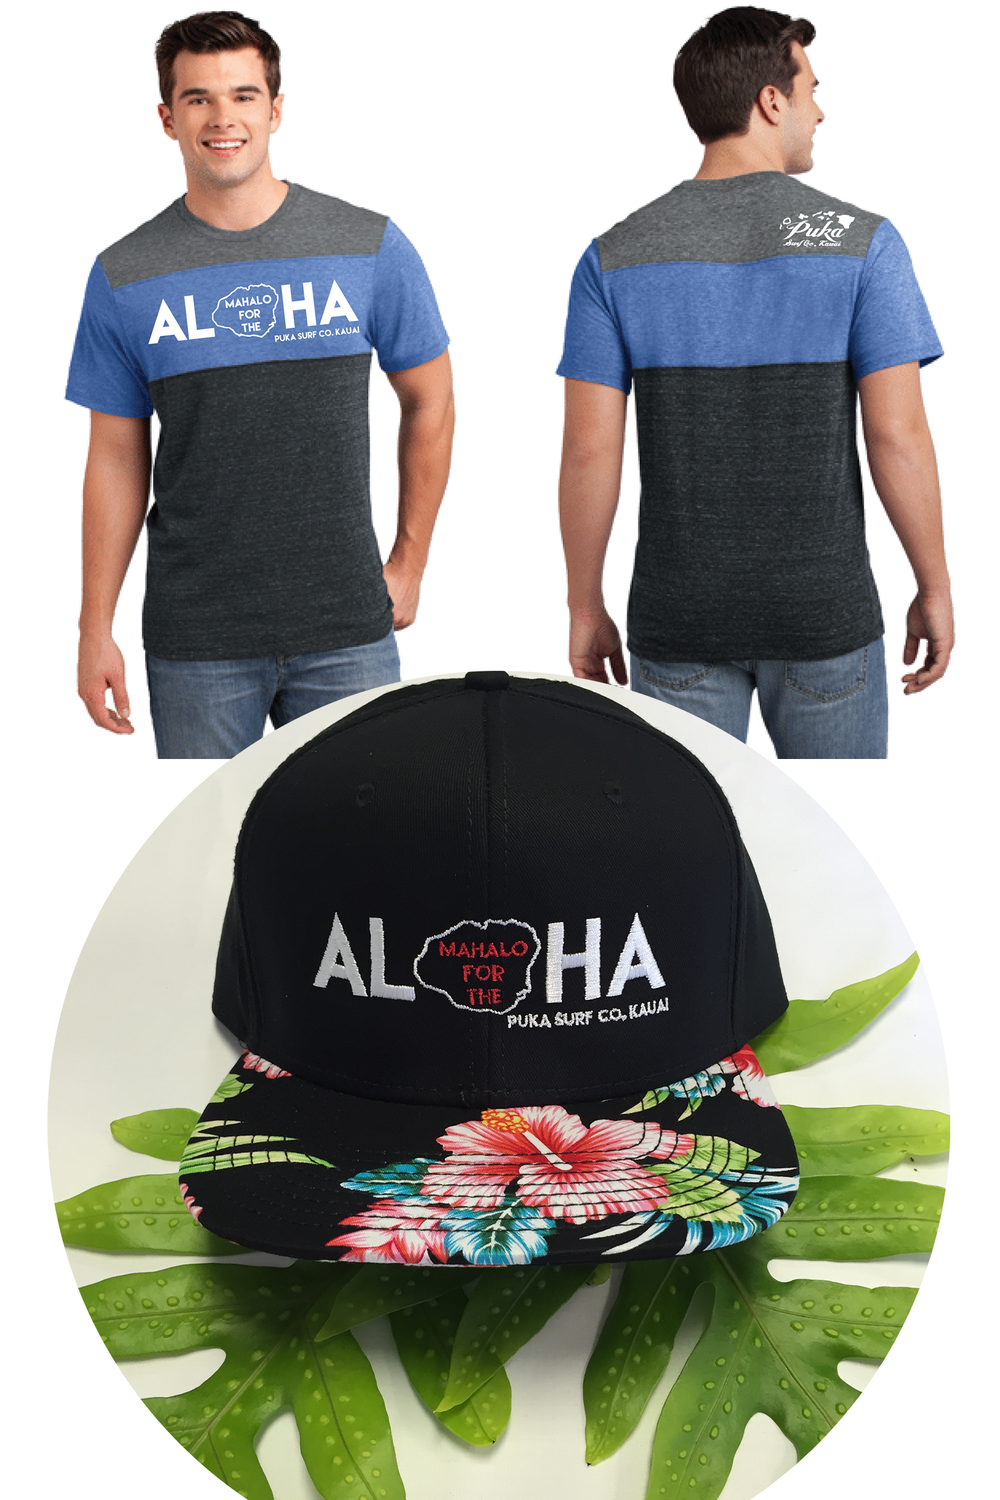 Mahalo for the Aloha - Aloha! Its more than a word...its a lifestyle. It's about respecting our past, present, and future and acknowledging the shared breath of life. Wear Your Aloha ➝